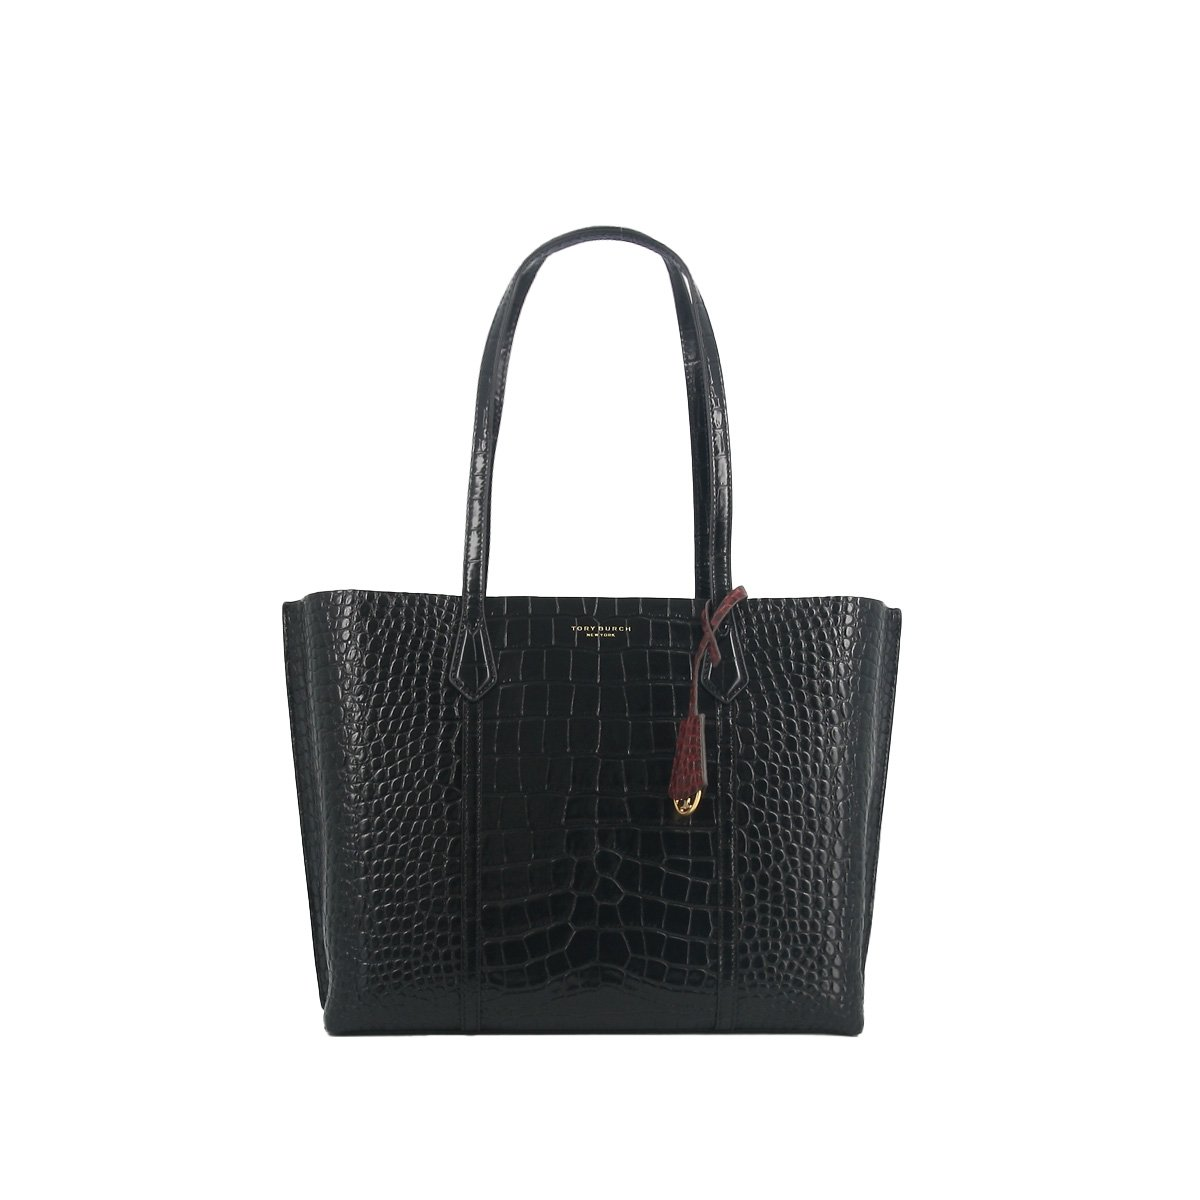 Tory Burch TORY BURCH PERRY EMBOSSED TOTE BAG